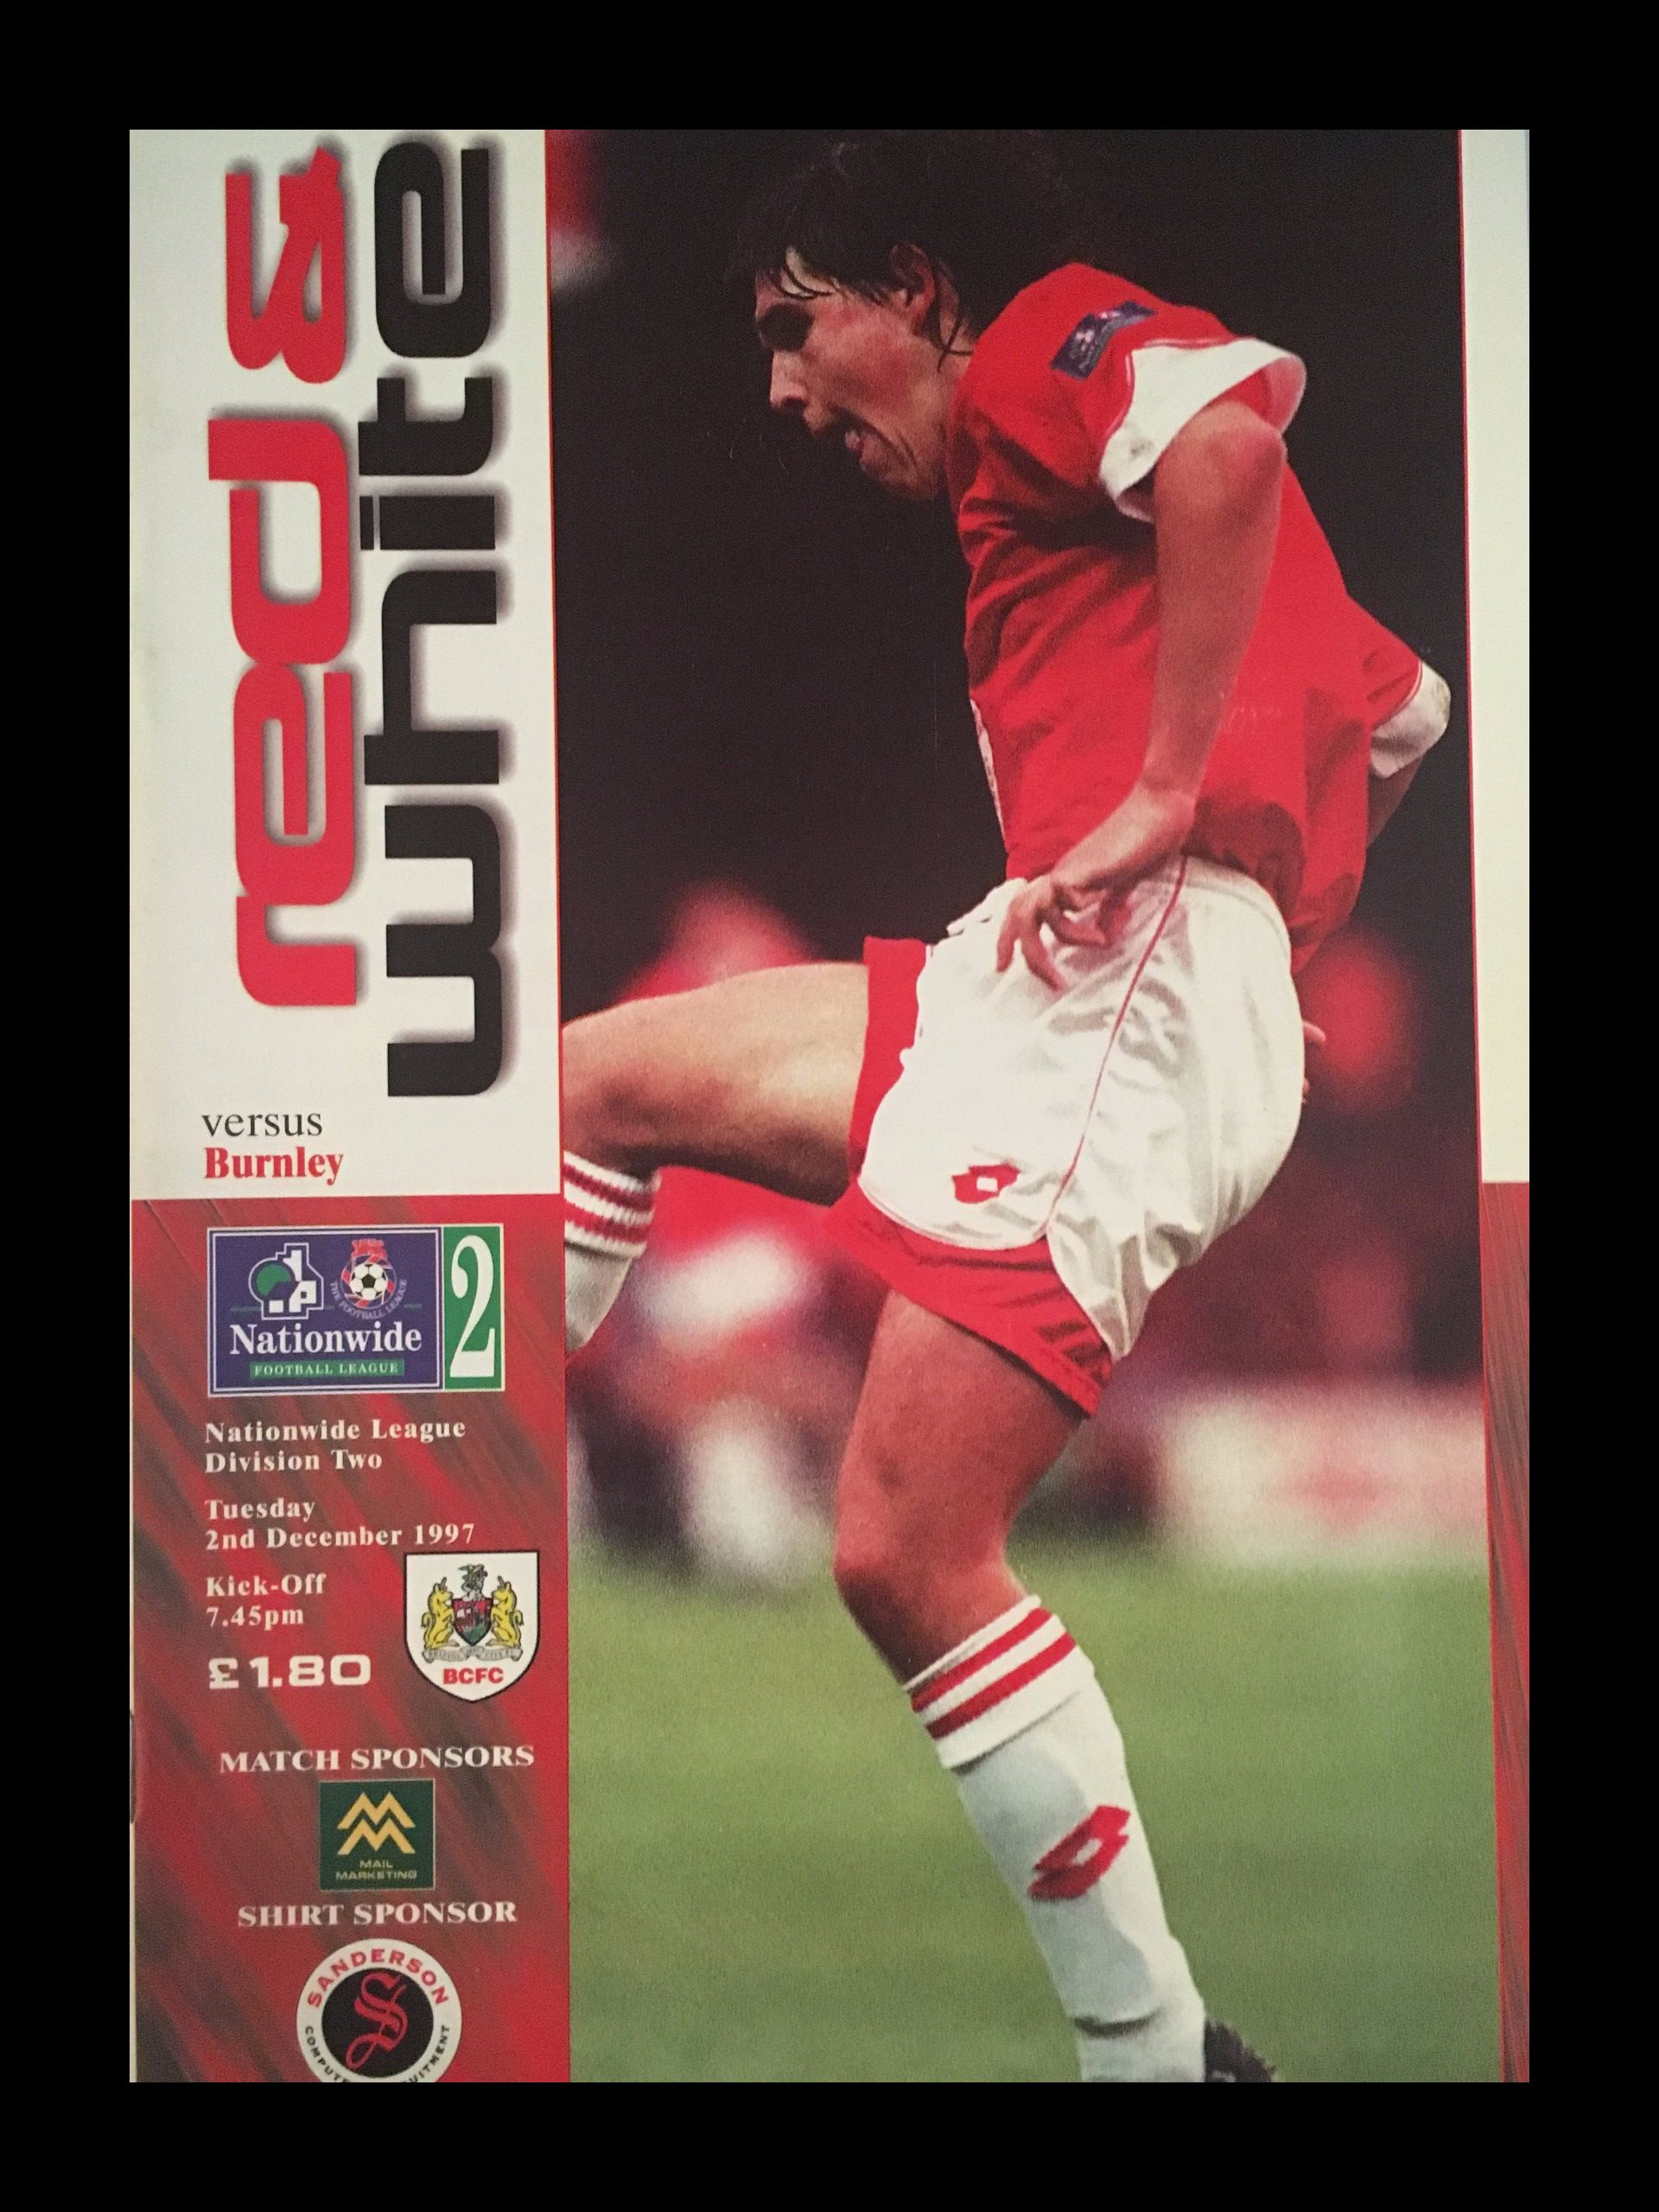 Bristol City v Burnley 02-12-1997 Programme